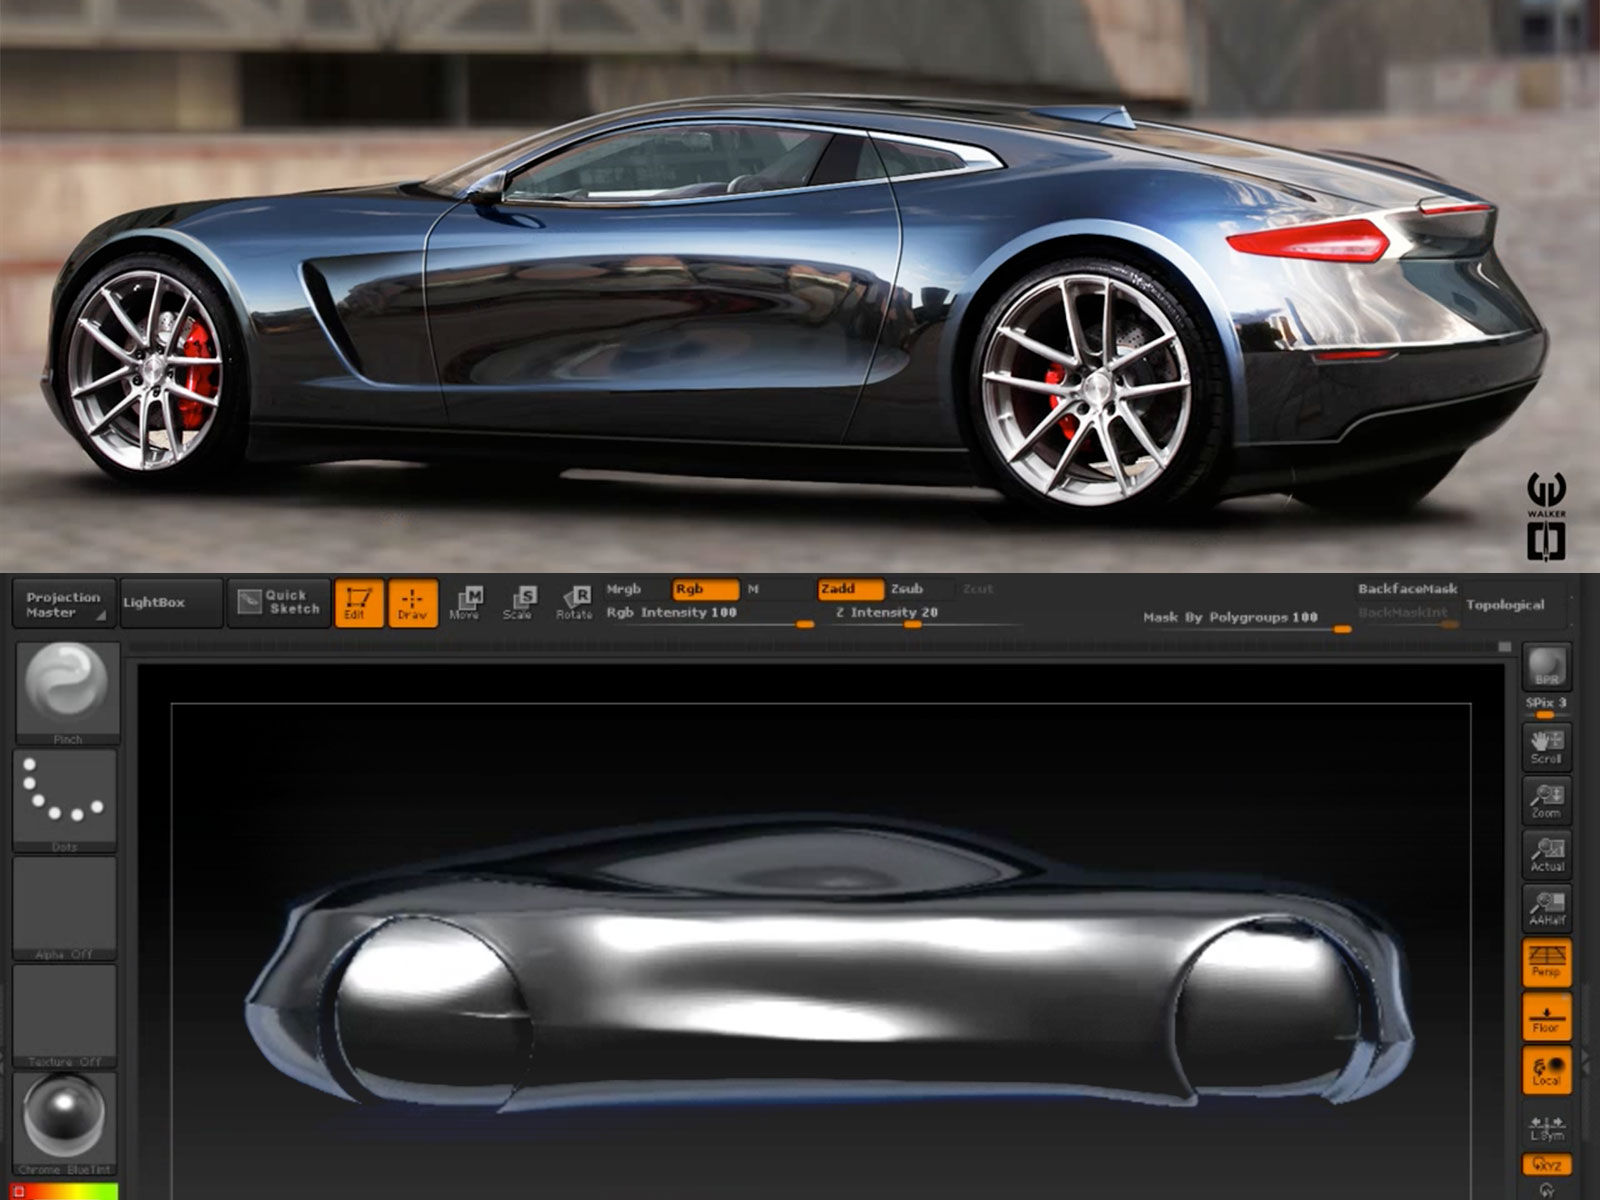 Concept Car 3D model in ZBrush by carstylus - Car Body Design